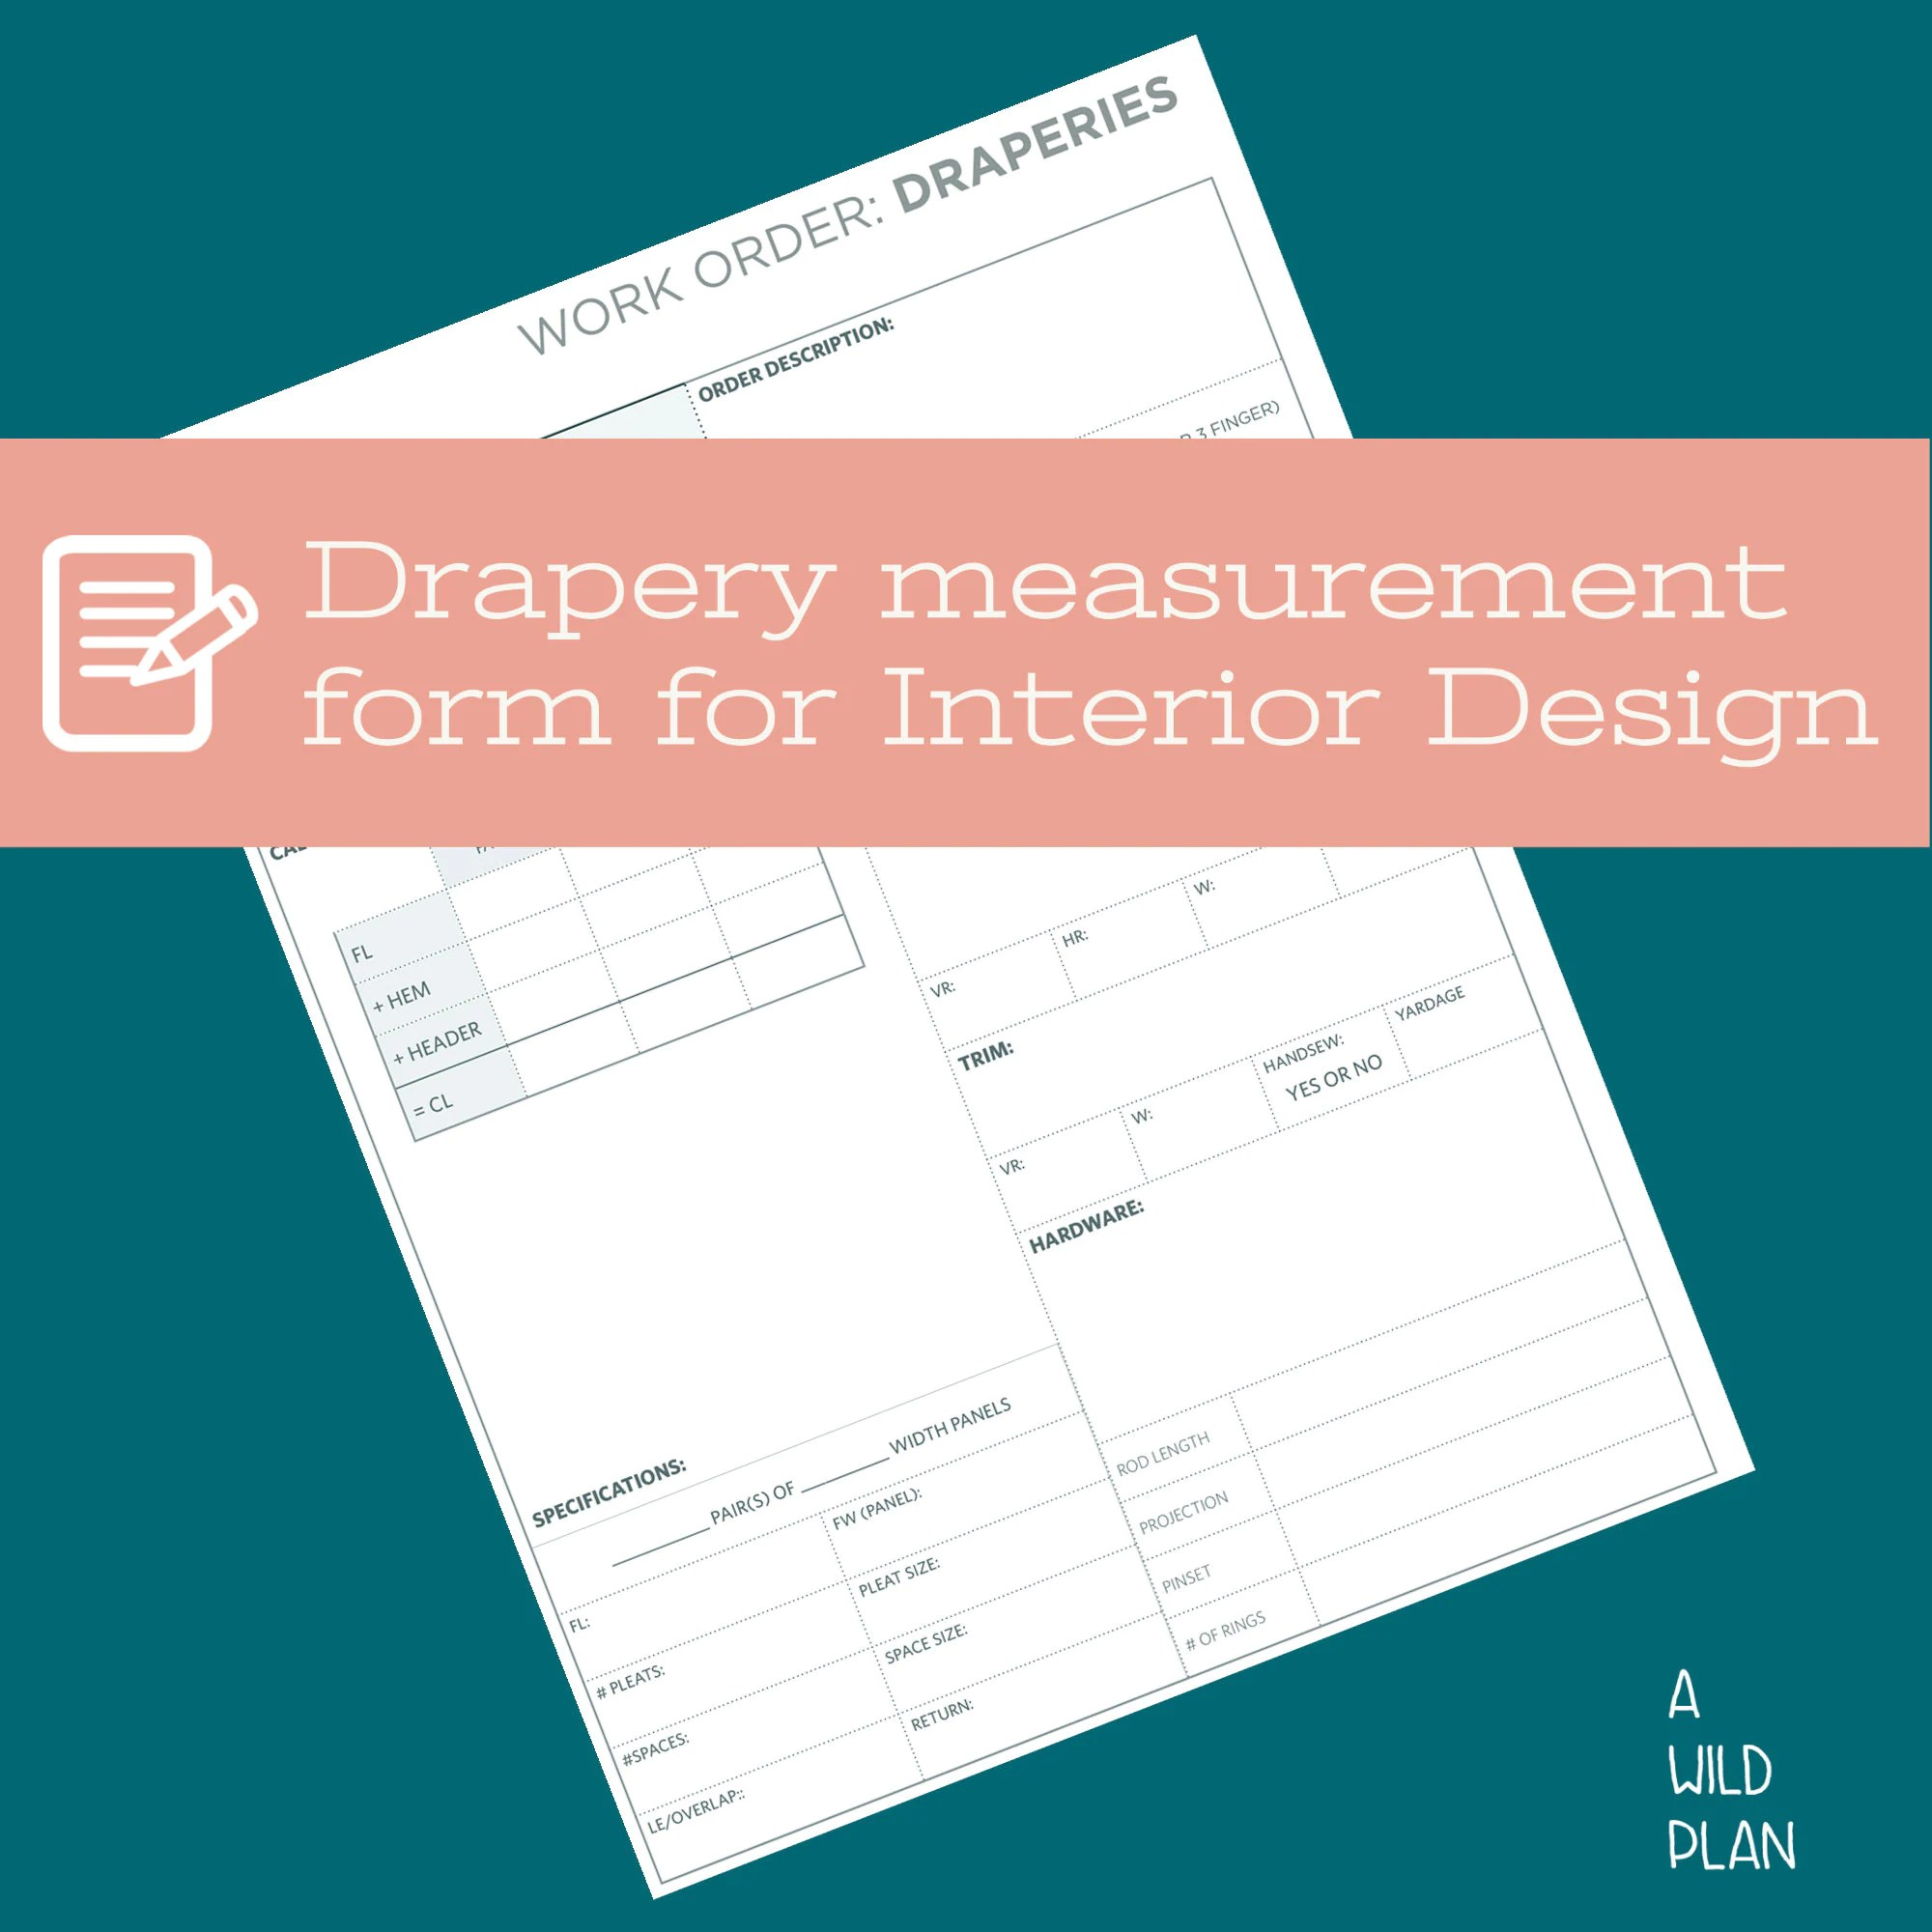 This template gives you the option to update your logo and create a letterhead in the header area. Interior Design Work Order Form Template Draperies With Etsy